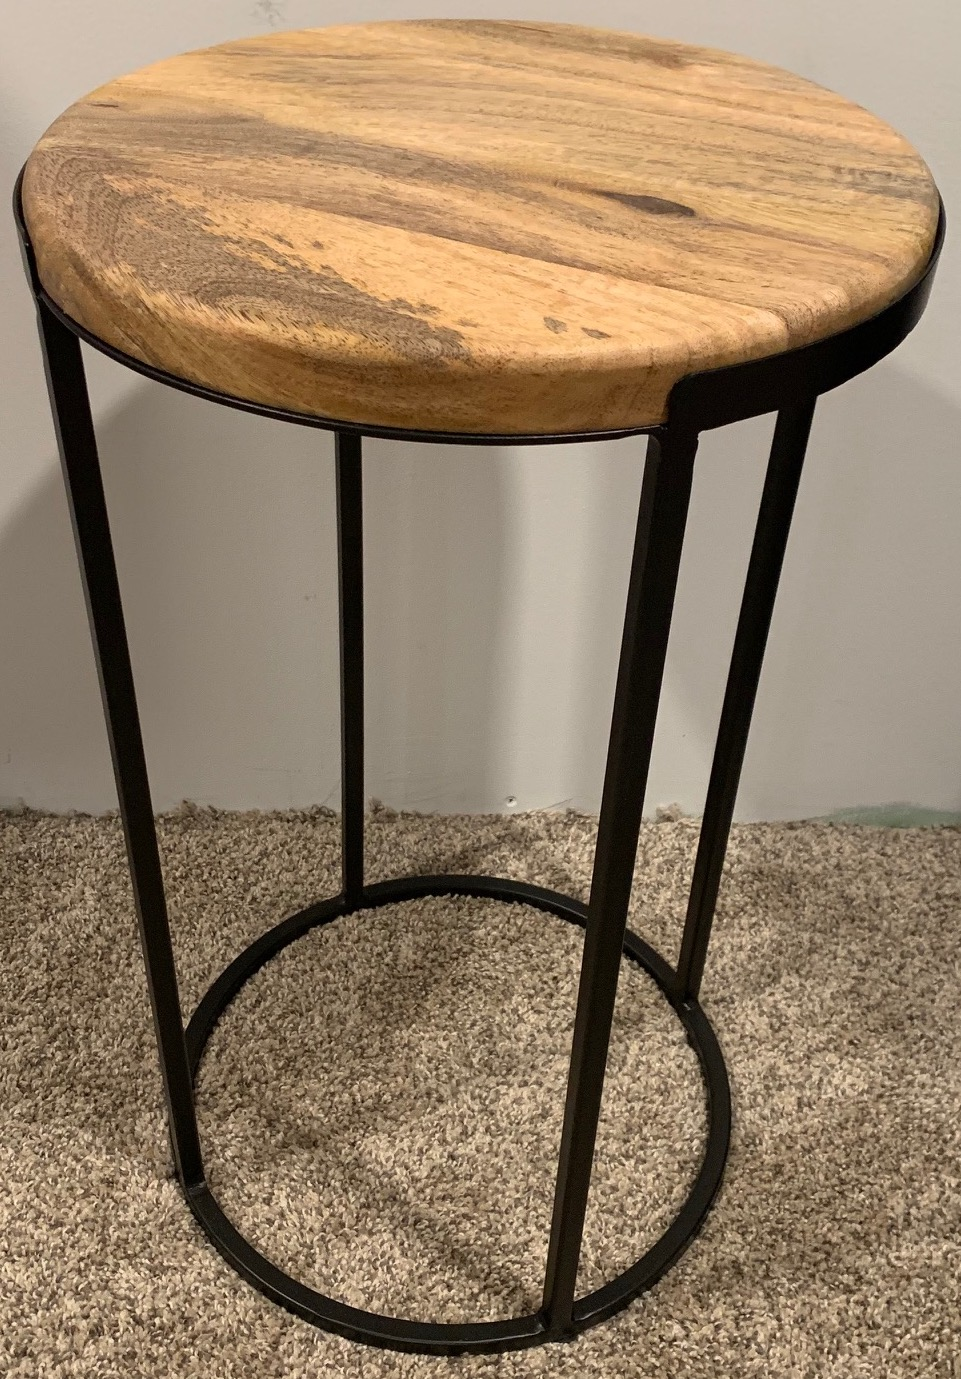 Harrison Side Table $20